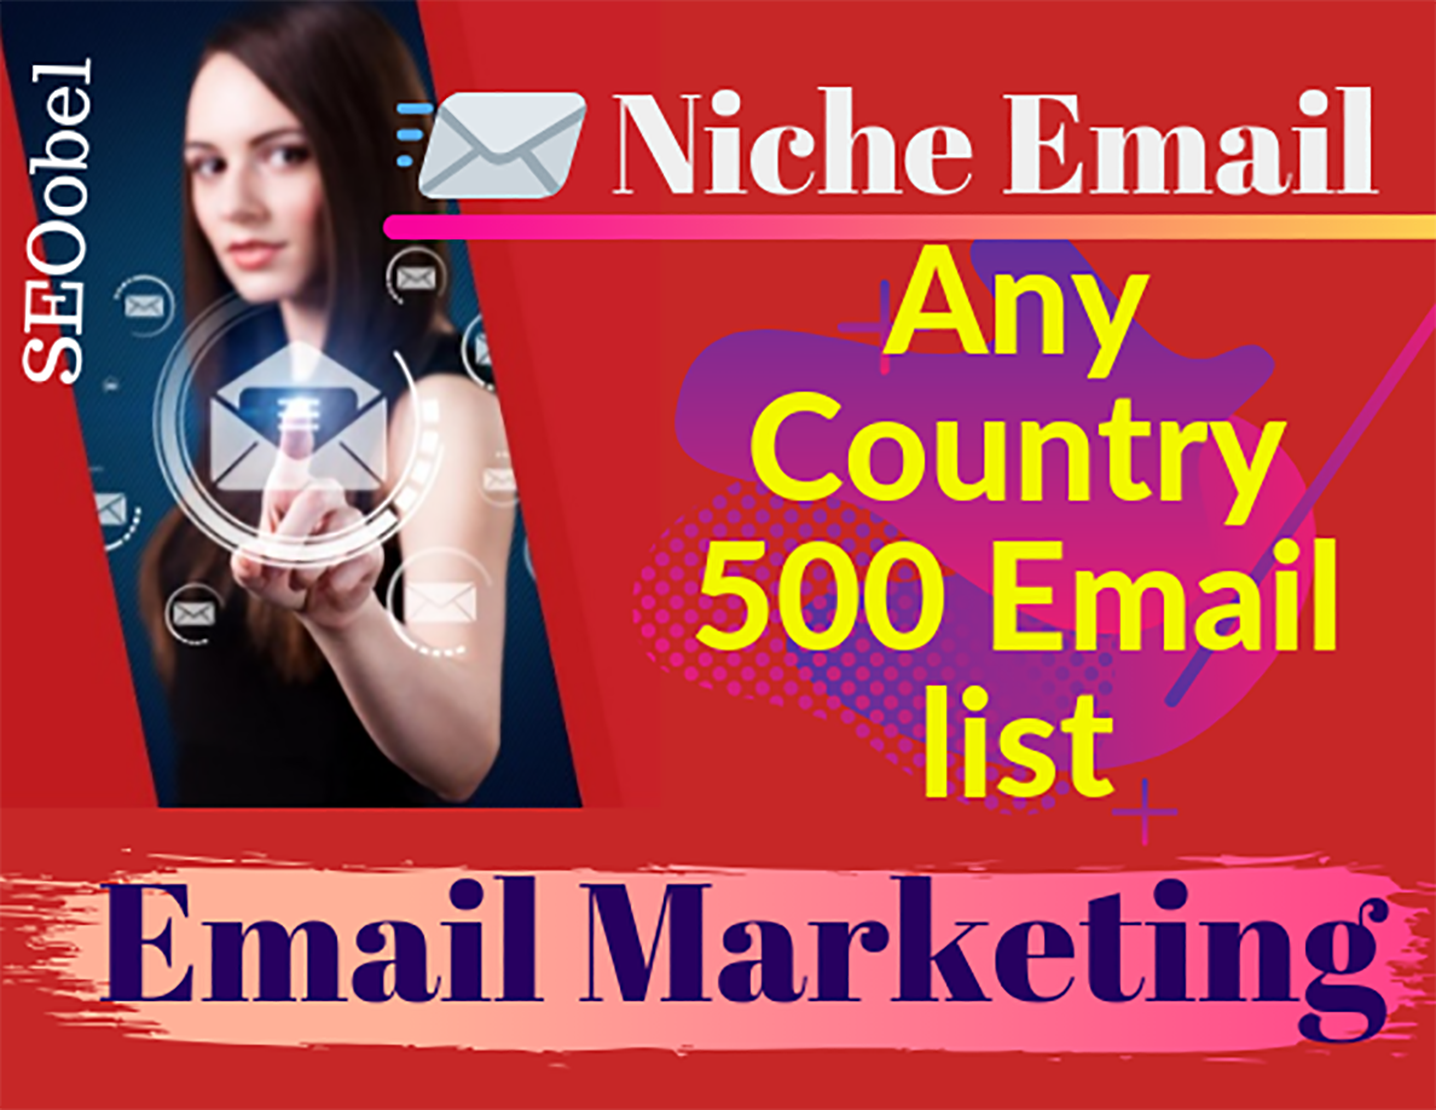 I Will Find Out Targeted Niche Email Lists For Email Marketing Crusades